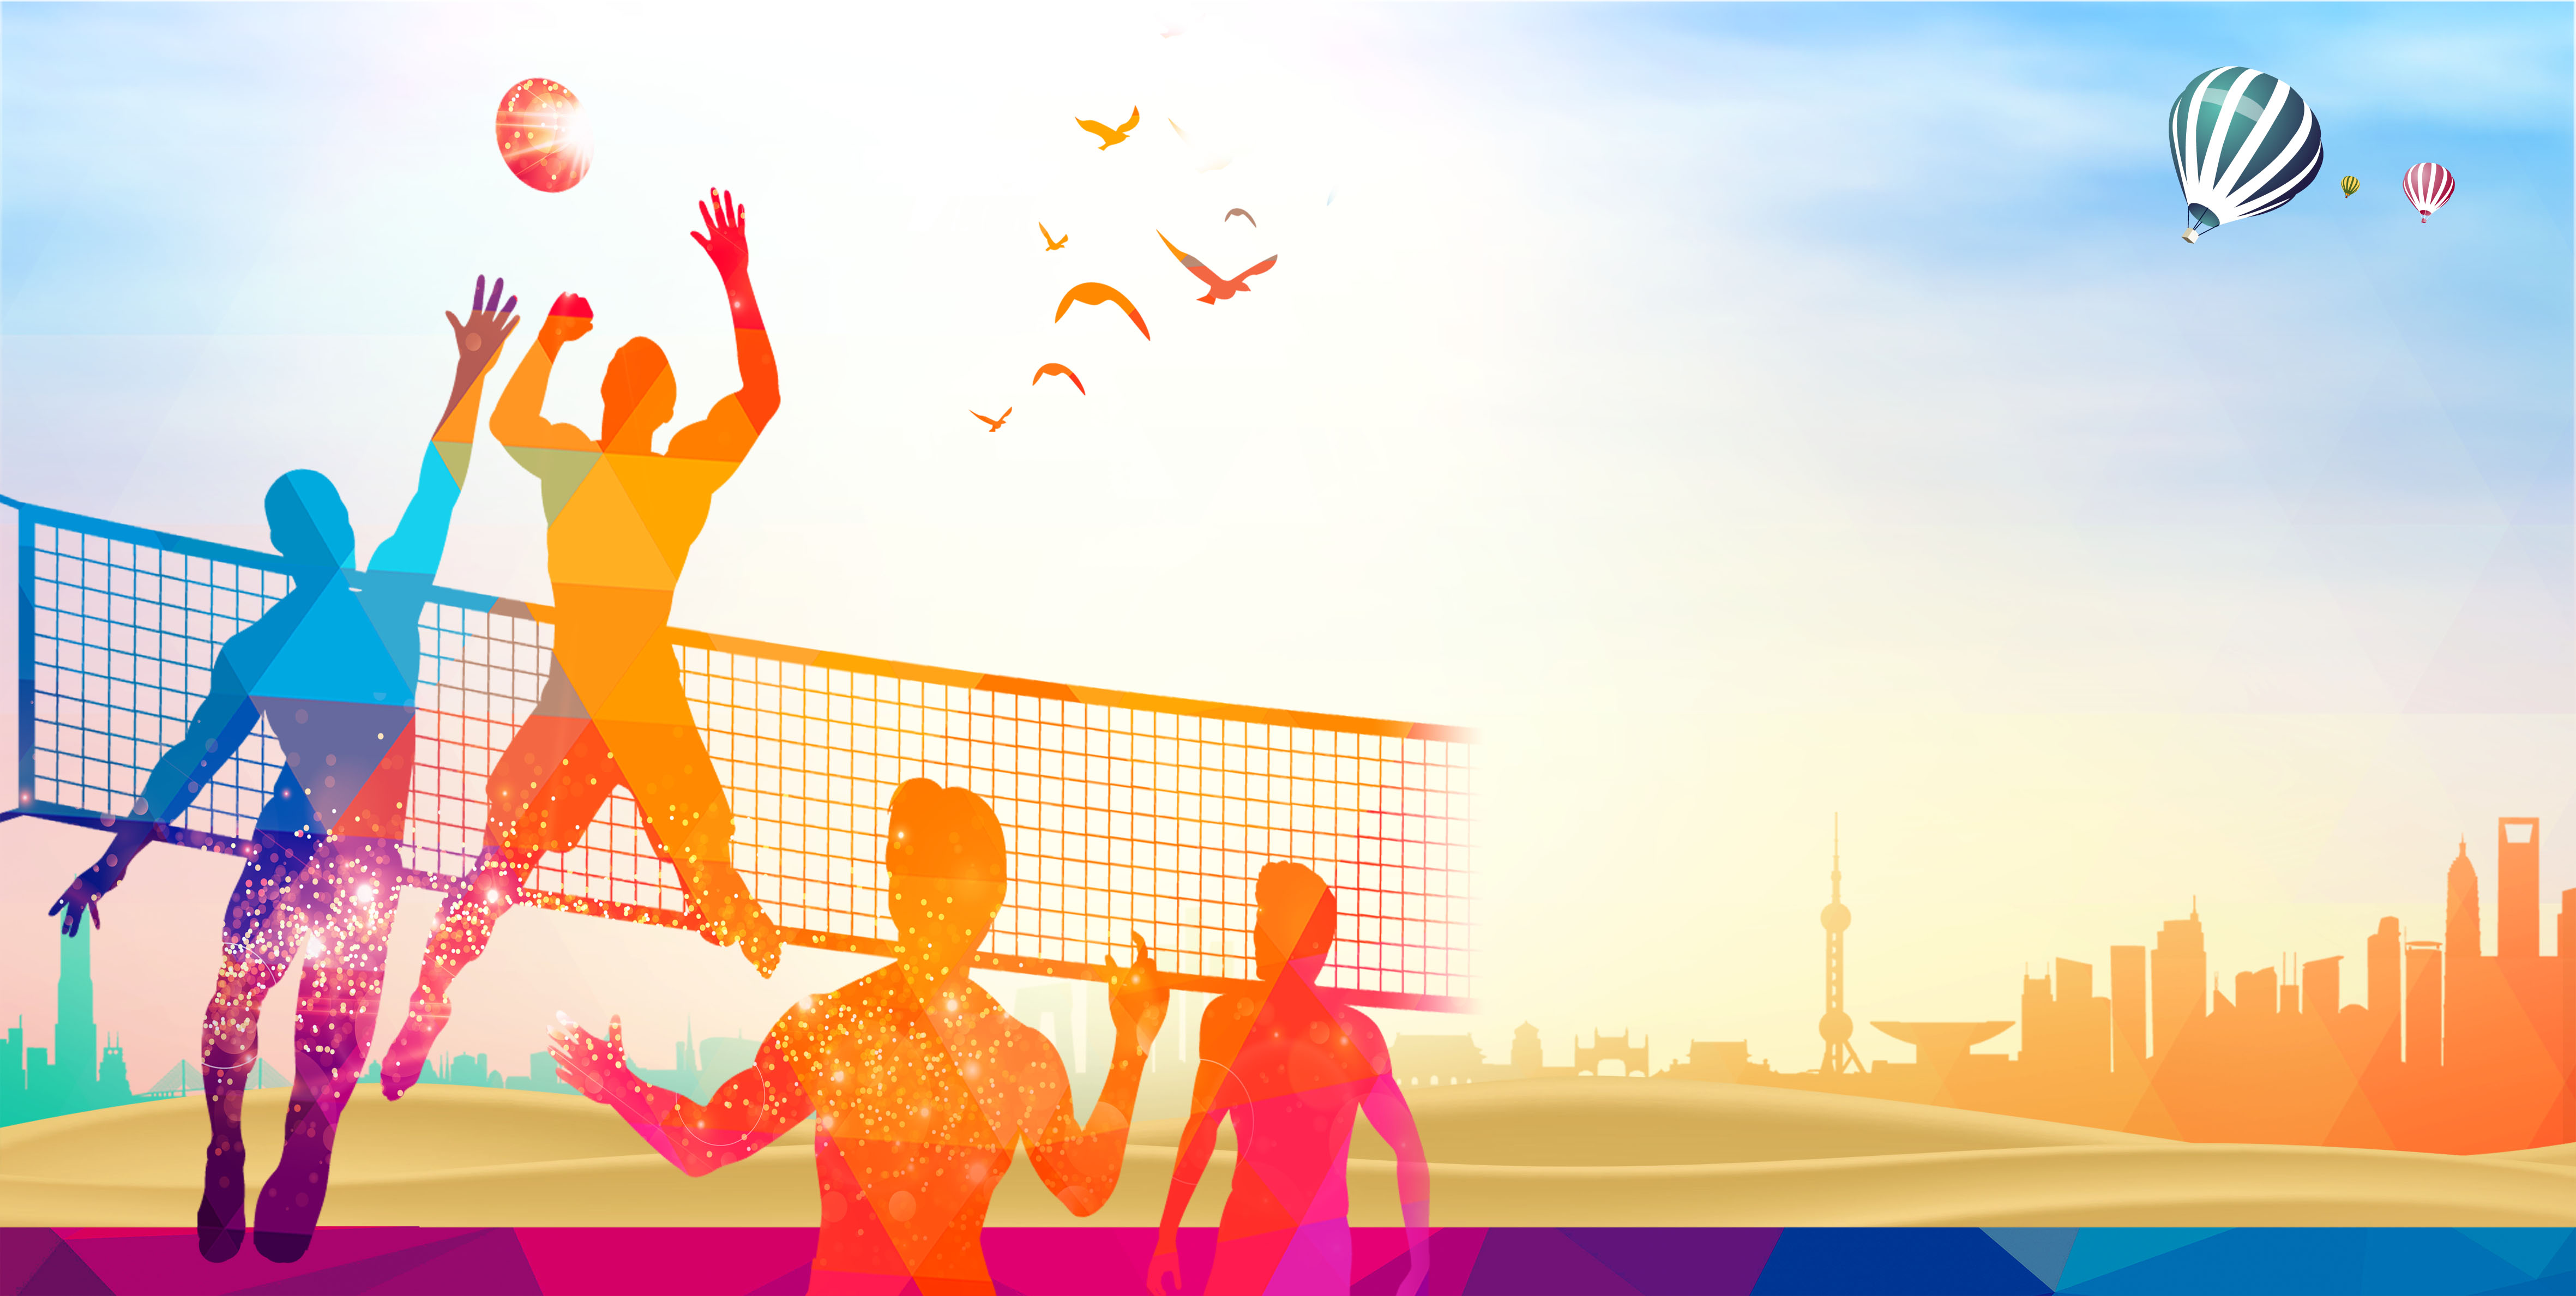 Volleyball Background Photos Volleyball Background Vectors and 4724x2377